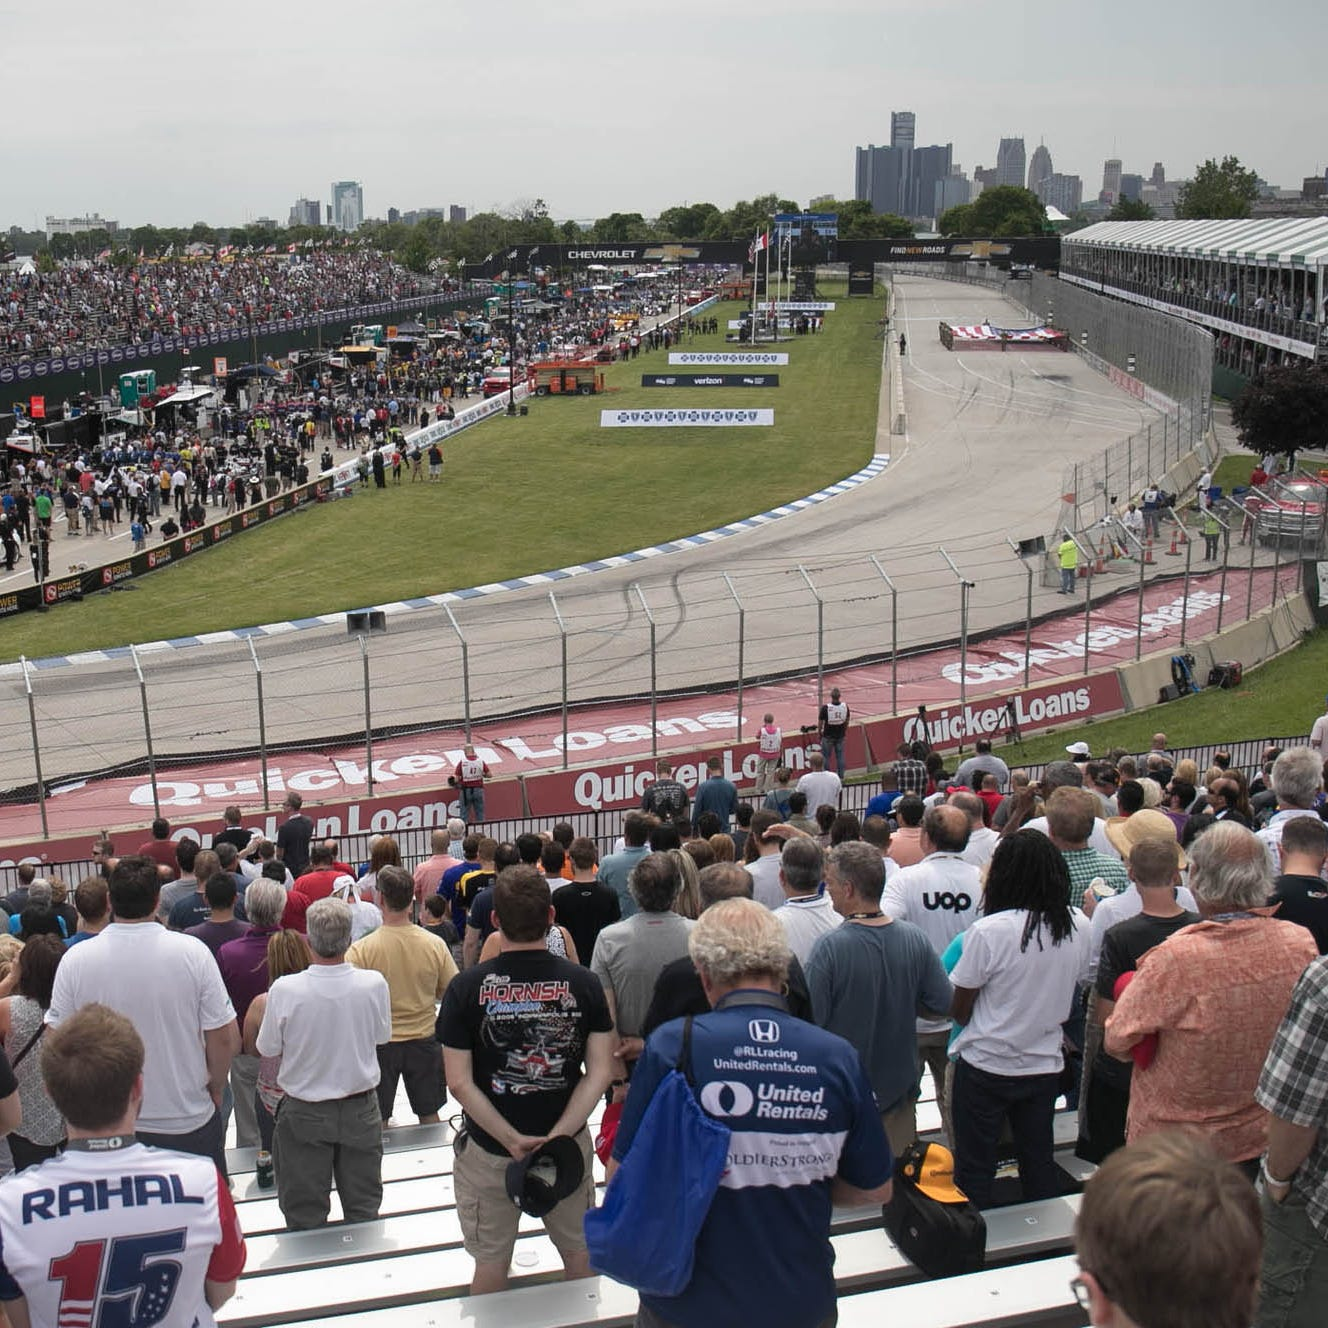 Detroit Grand Prix offers $300,000 a year to race on Belle Isle